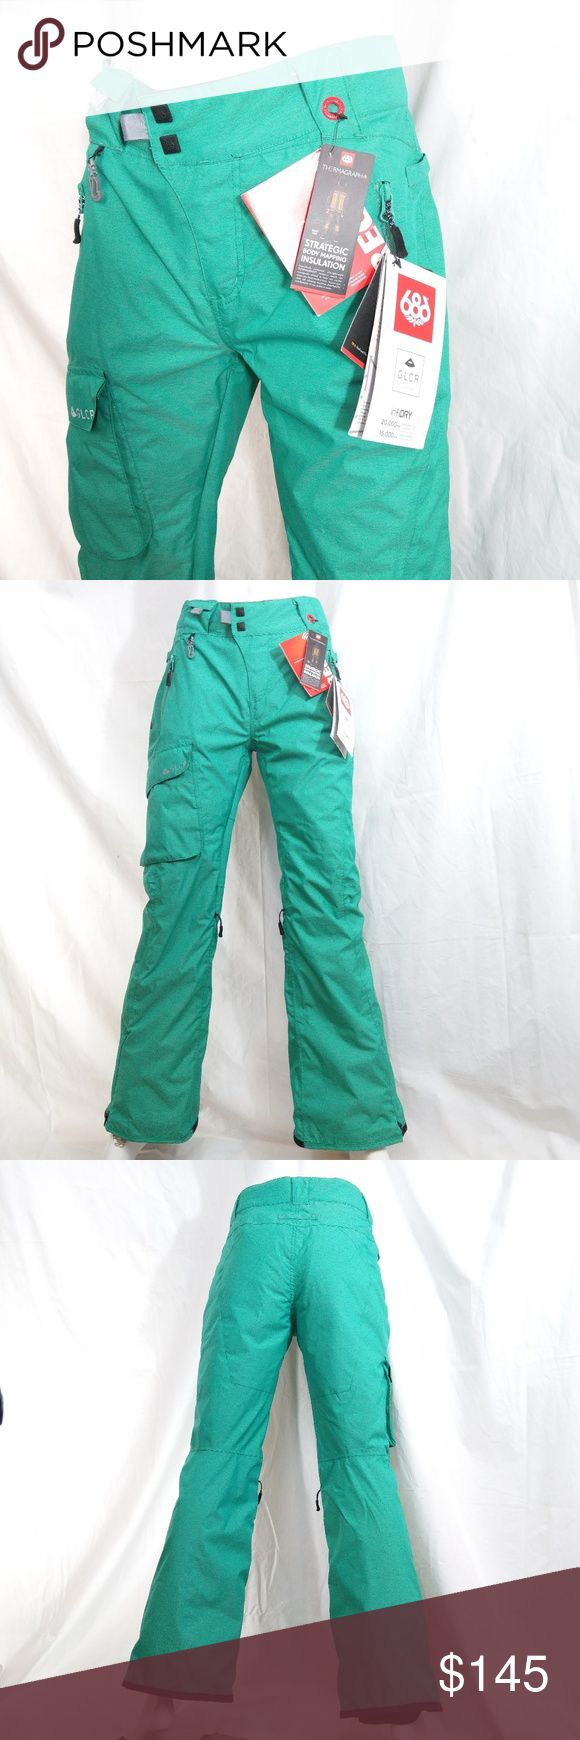 """686 GLCR Thermograph Insulated Snowboard Pants Snowboard like you're in the Olympics in these authentic 686 GLCR Trail Thermograph insulated snowboard pants  They feature: --highest level of waterproofing --BOA-compatible leg gaiters to seal you off at the boots --Thermagraph insulation system which warms you exactly where needed so your legs remain fresh & limber  Pictures are part of description. Color may VARY depending on viewing device. Color listed is """"Emerald.""""  Includes hologram tag…"""